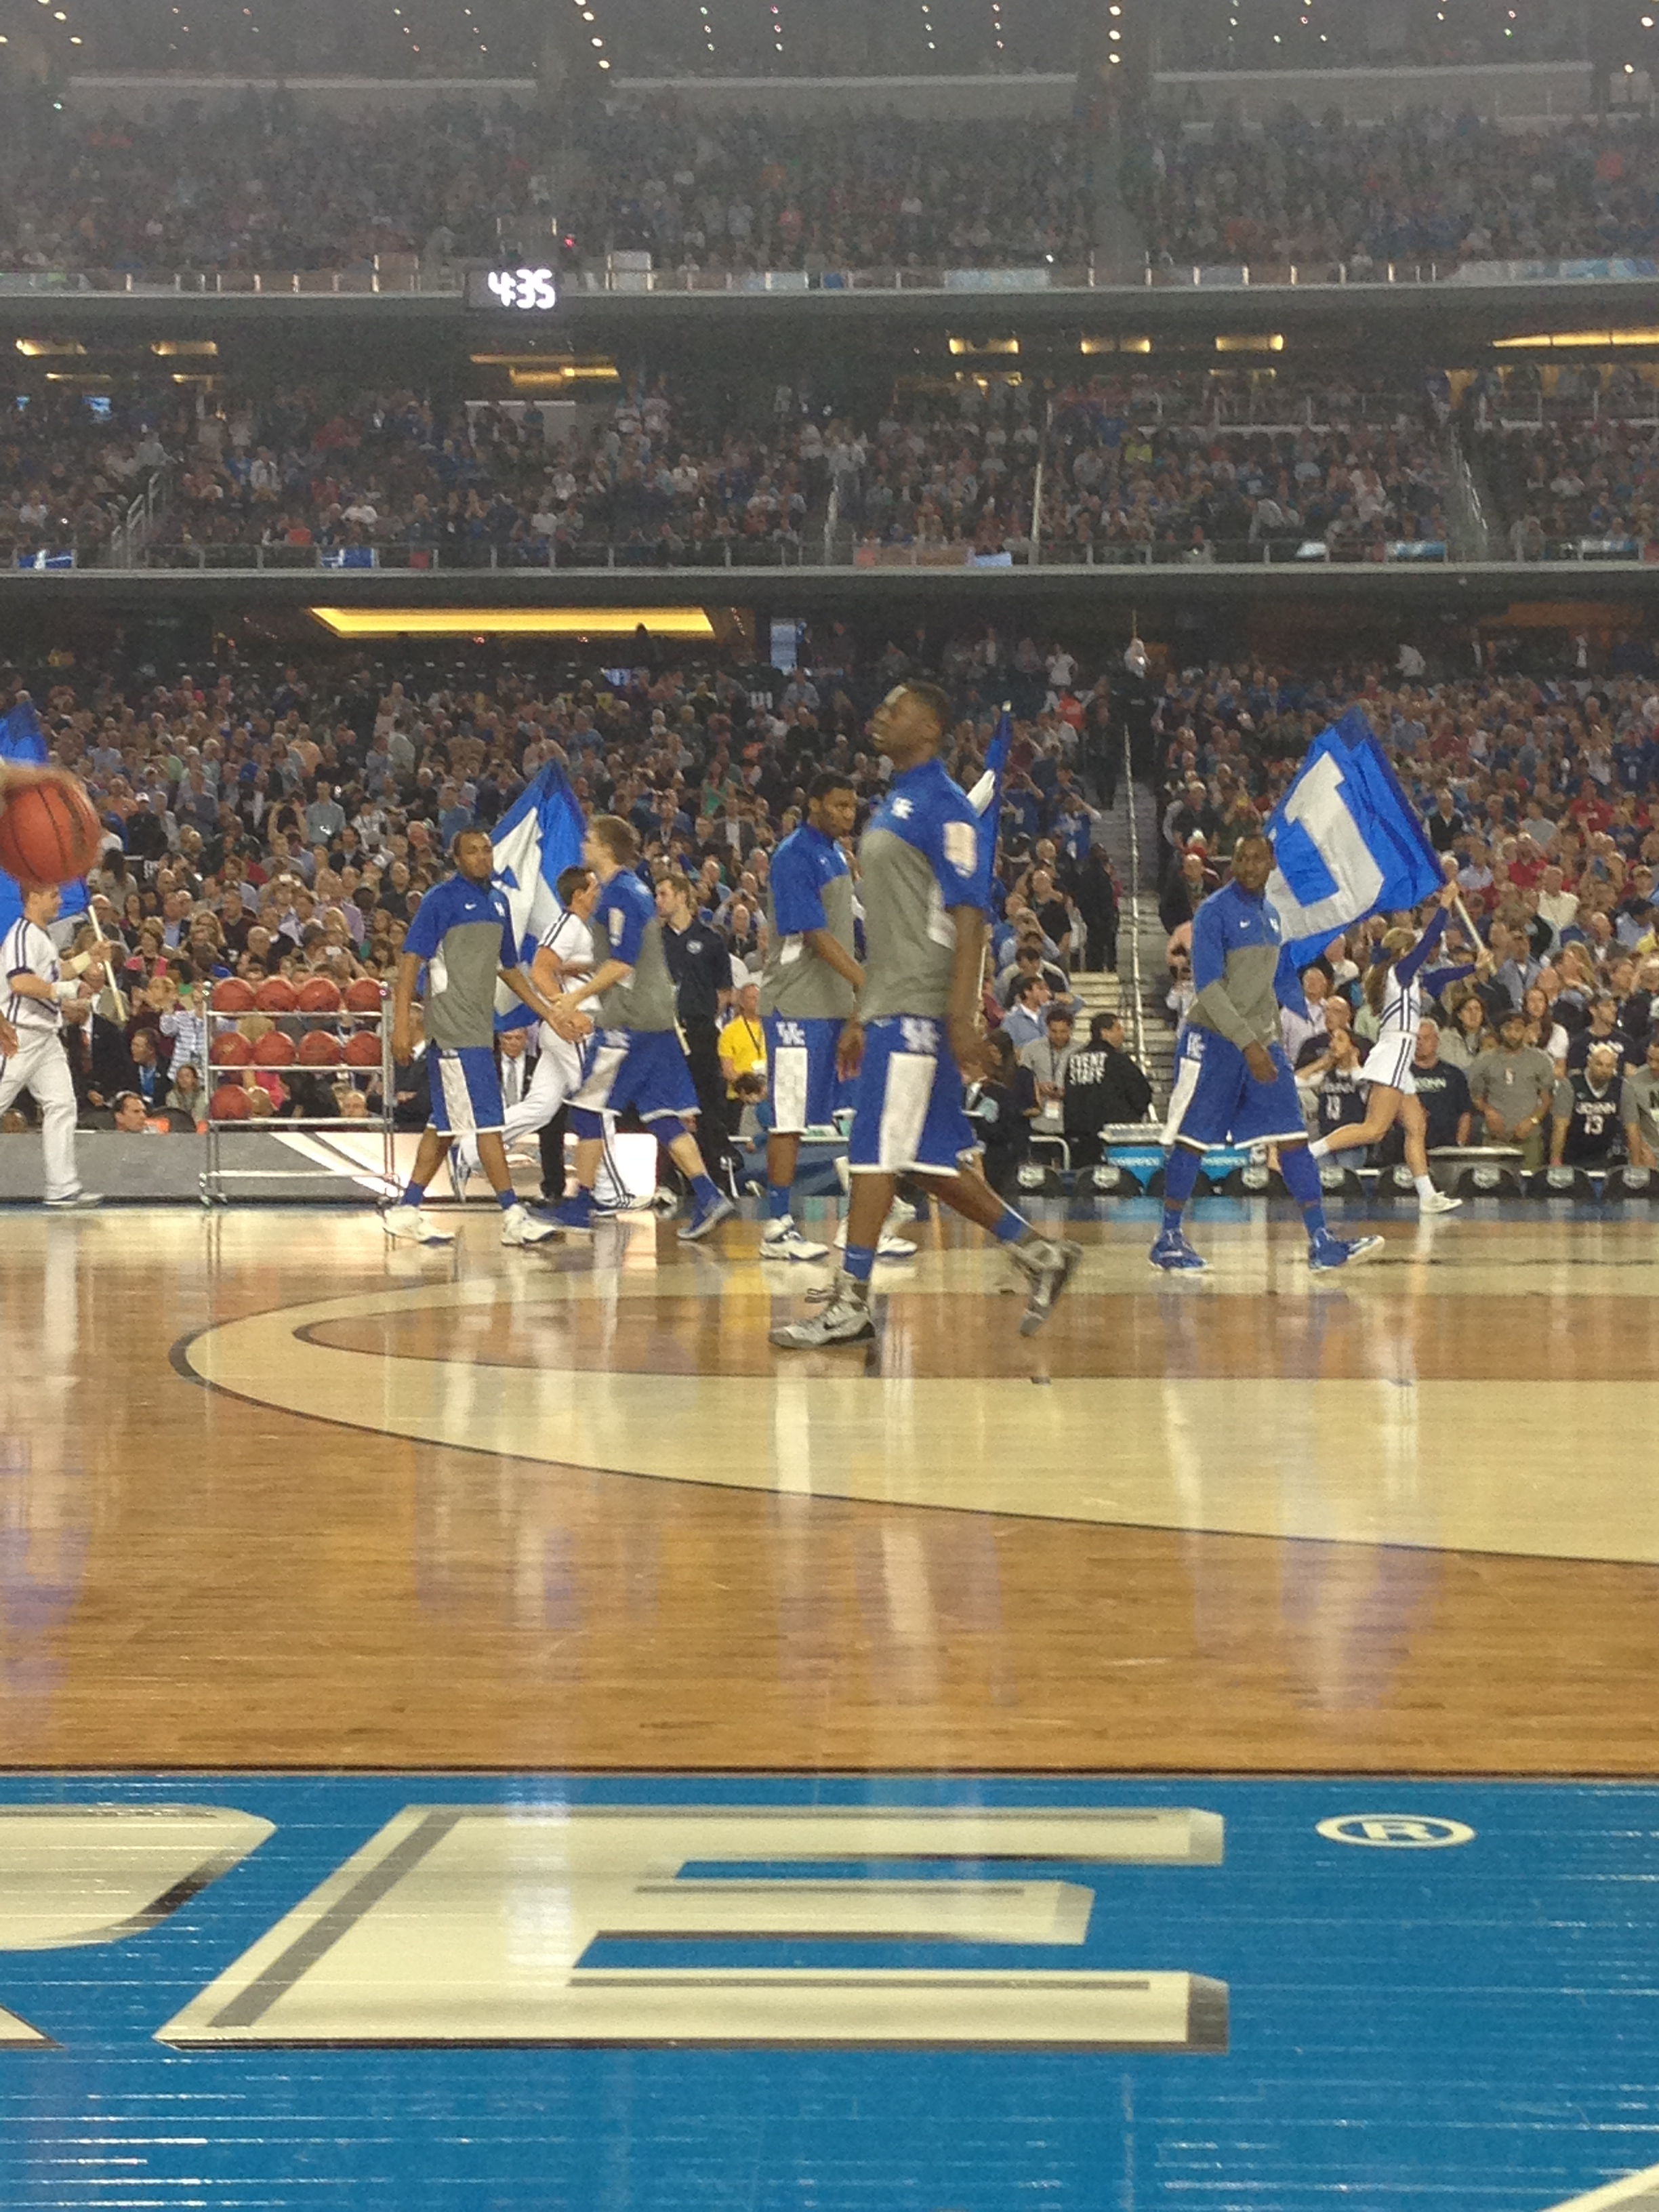 Kentucky Wildcats coming out of the locker room.